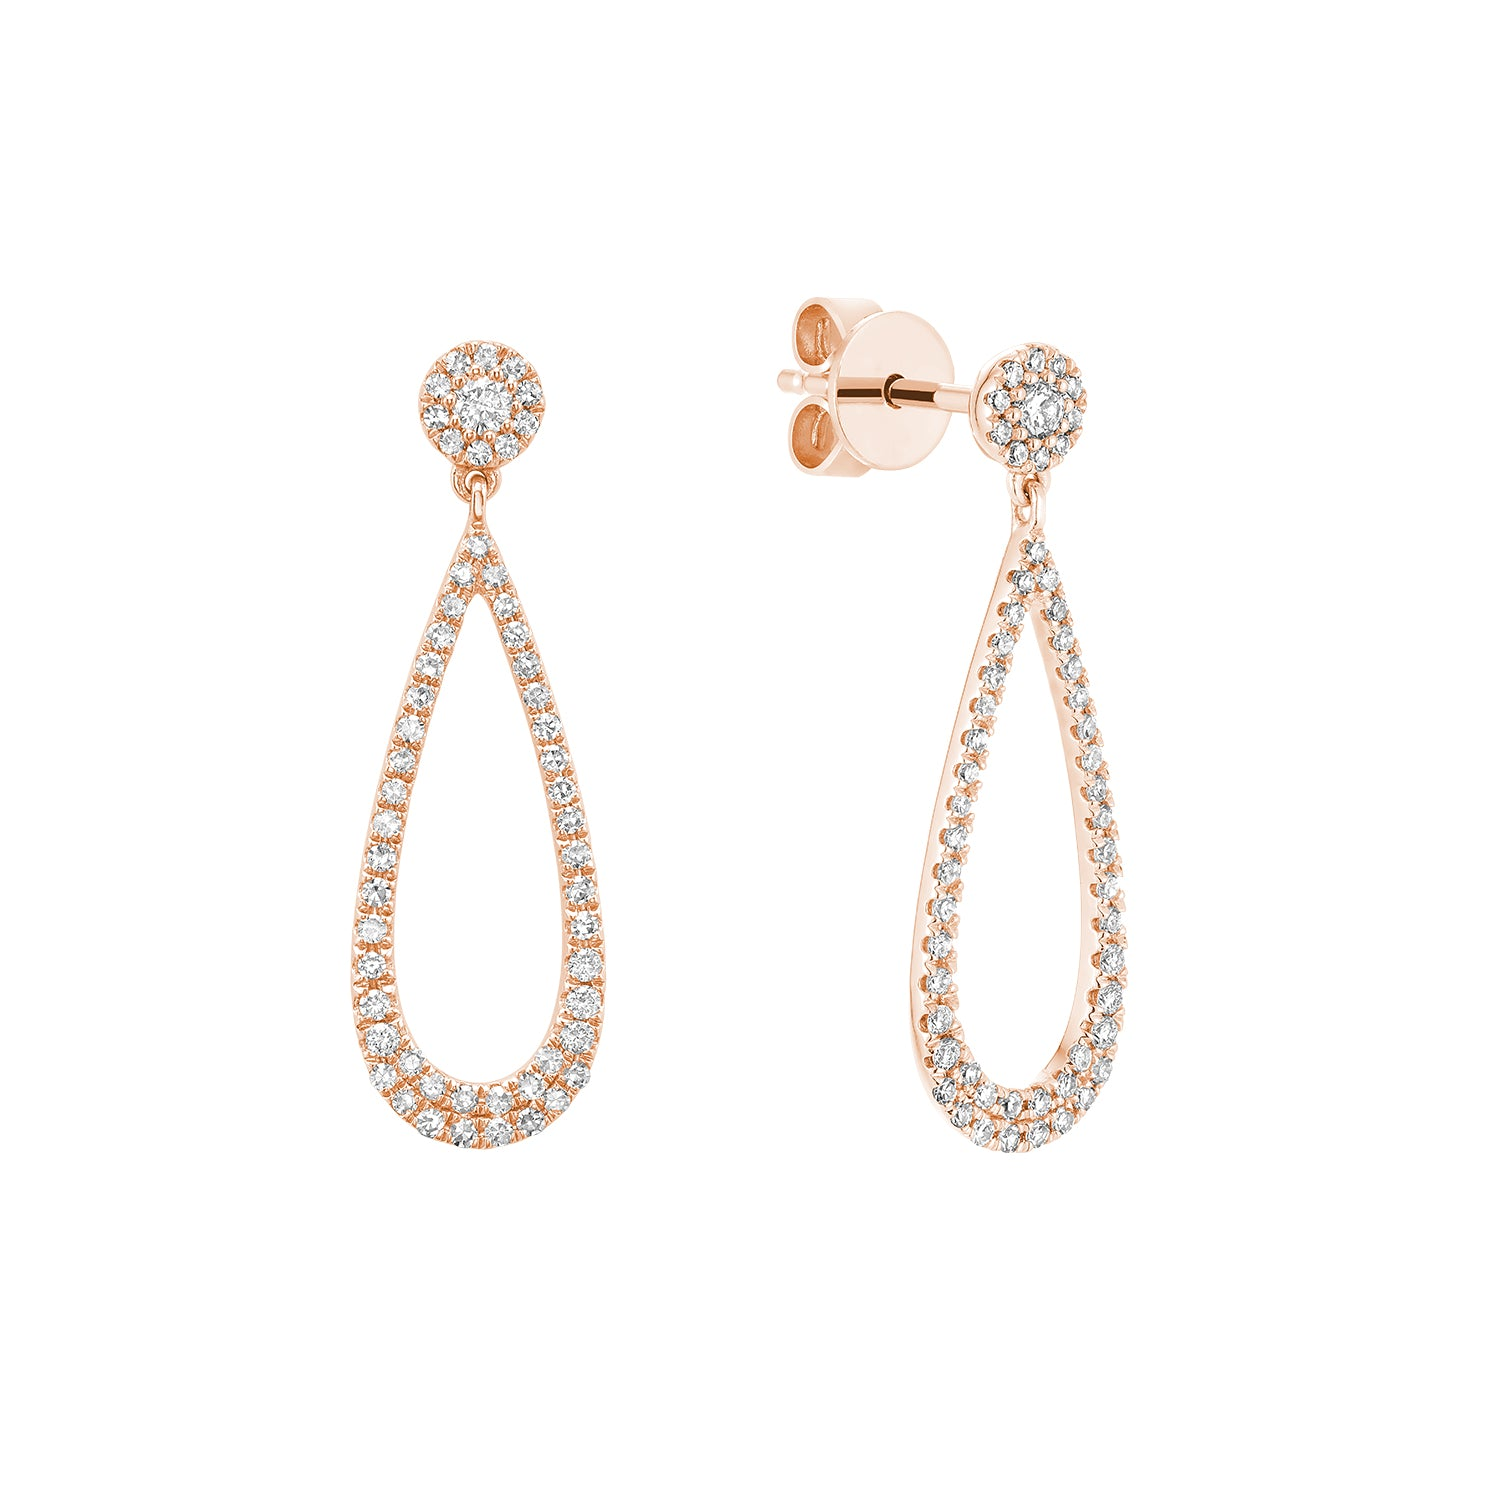 Hemsleys Collection 14K Diamond Open Teardrop Earrings